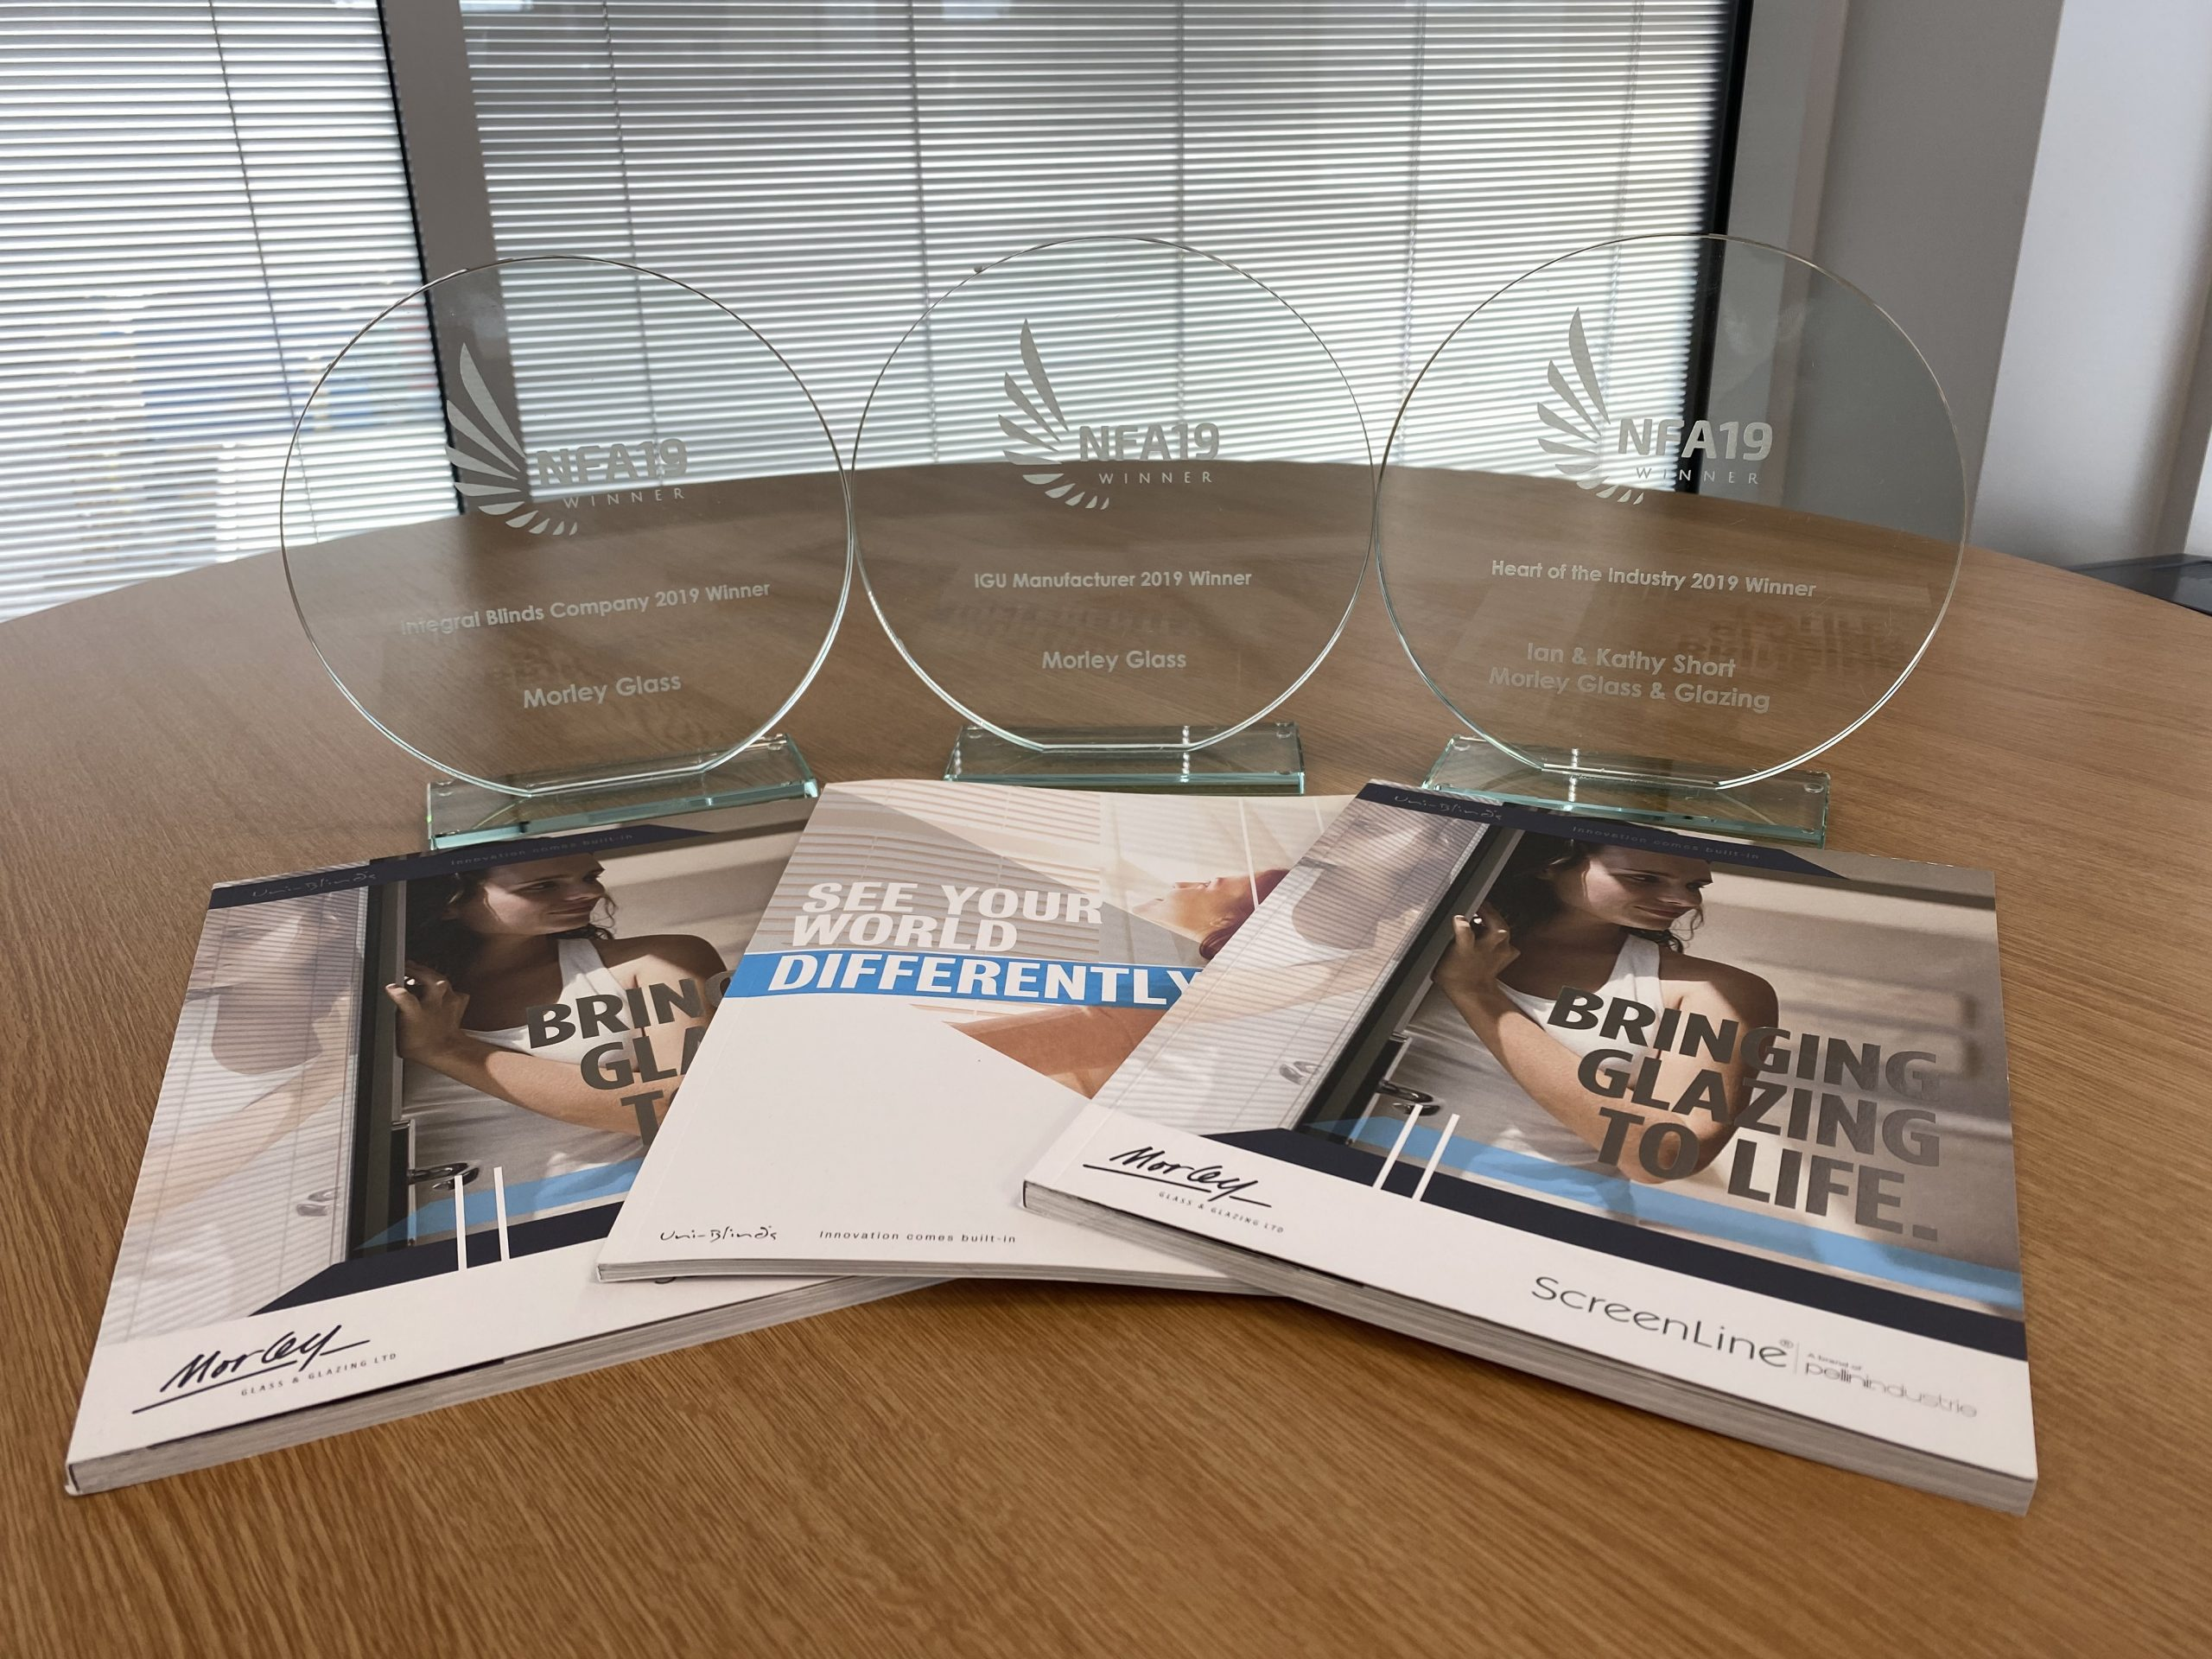 Three NFA nominations for Morley Glass & Glazing – again!